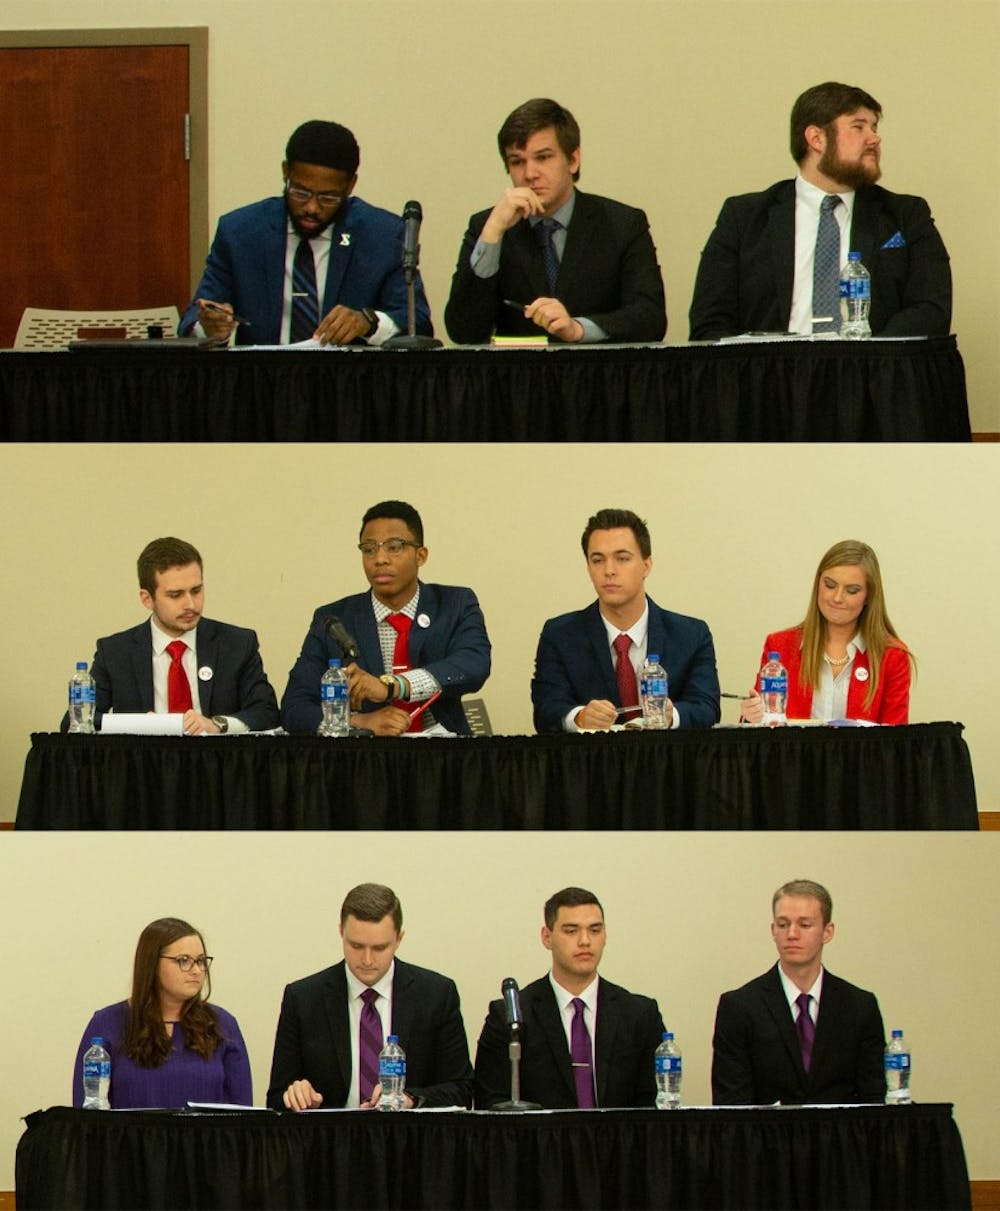 (Top to bottom) United slate candidates, Empower slate candidates and Elevate slate candidates sit during the All-Slate Debate in the L.A. Pittenger Student Center ballroom Feb. 18, 2019. Slates debated on a variety of topics. Scott Fleener, DN